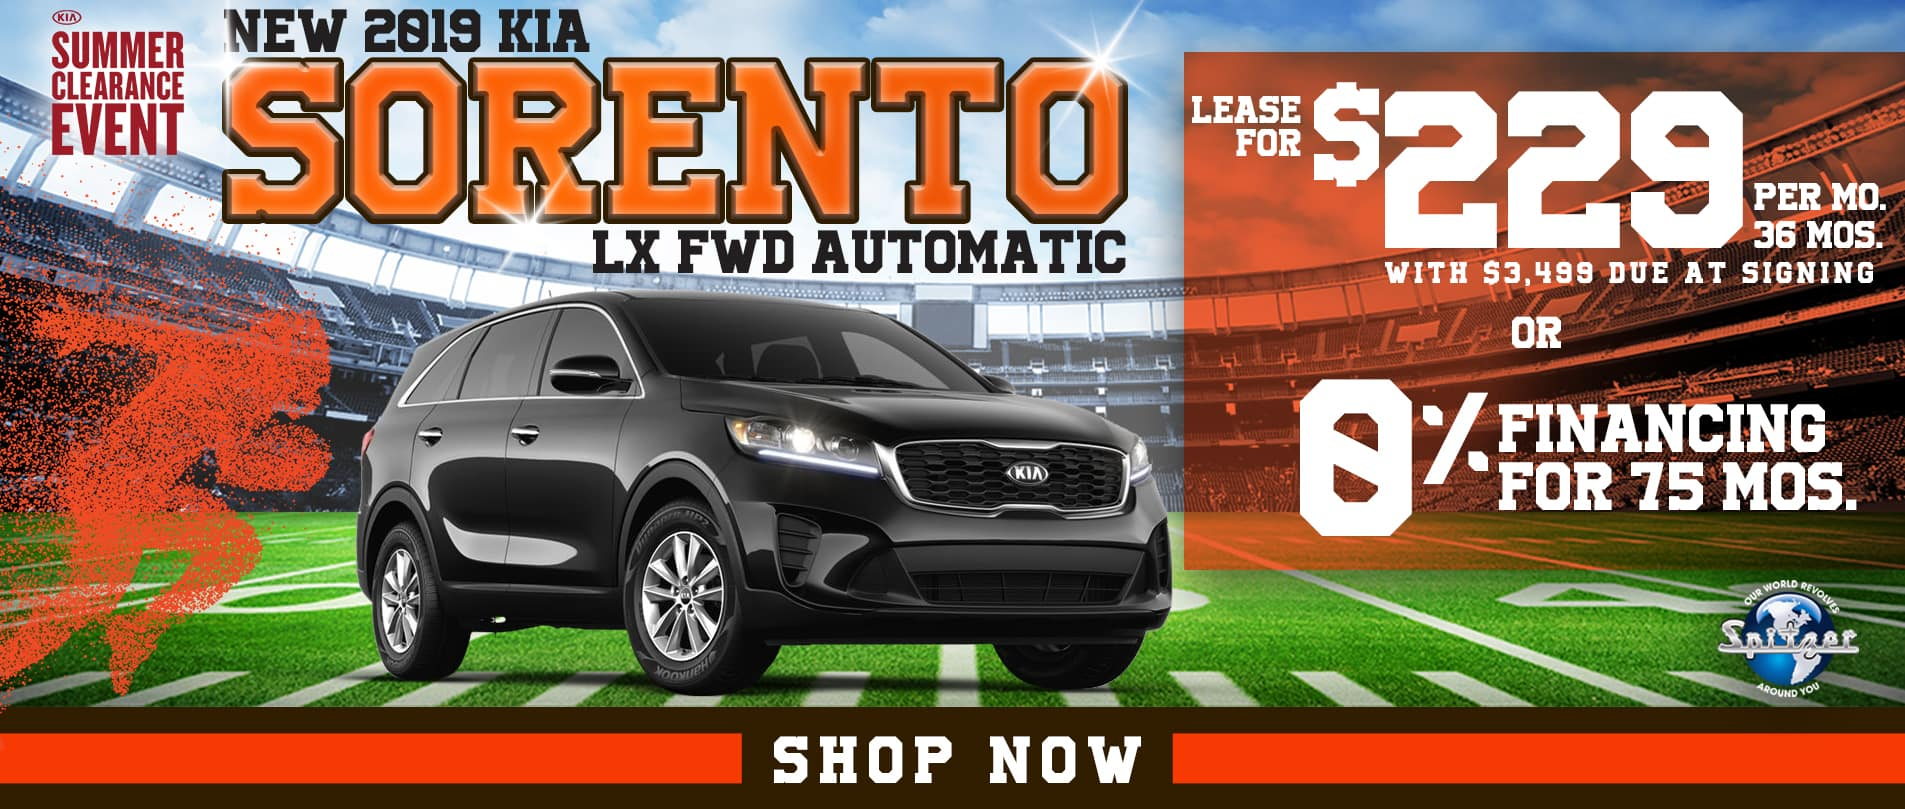 Sorento | Lease for $229 per month